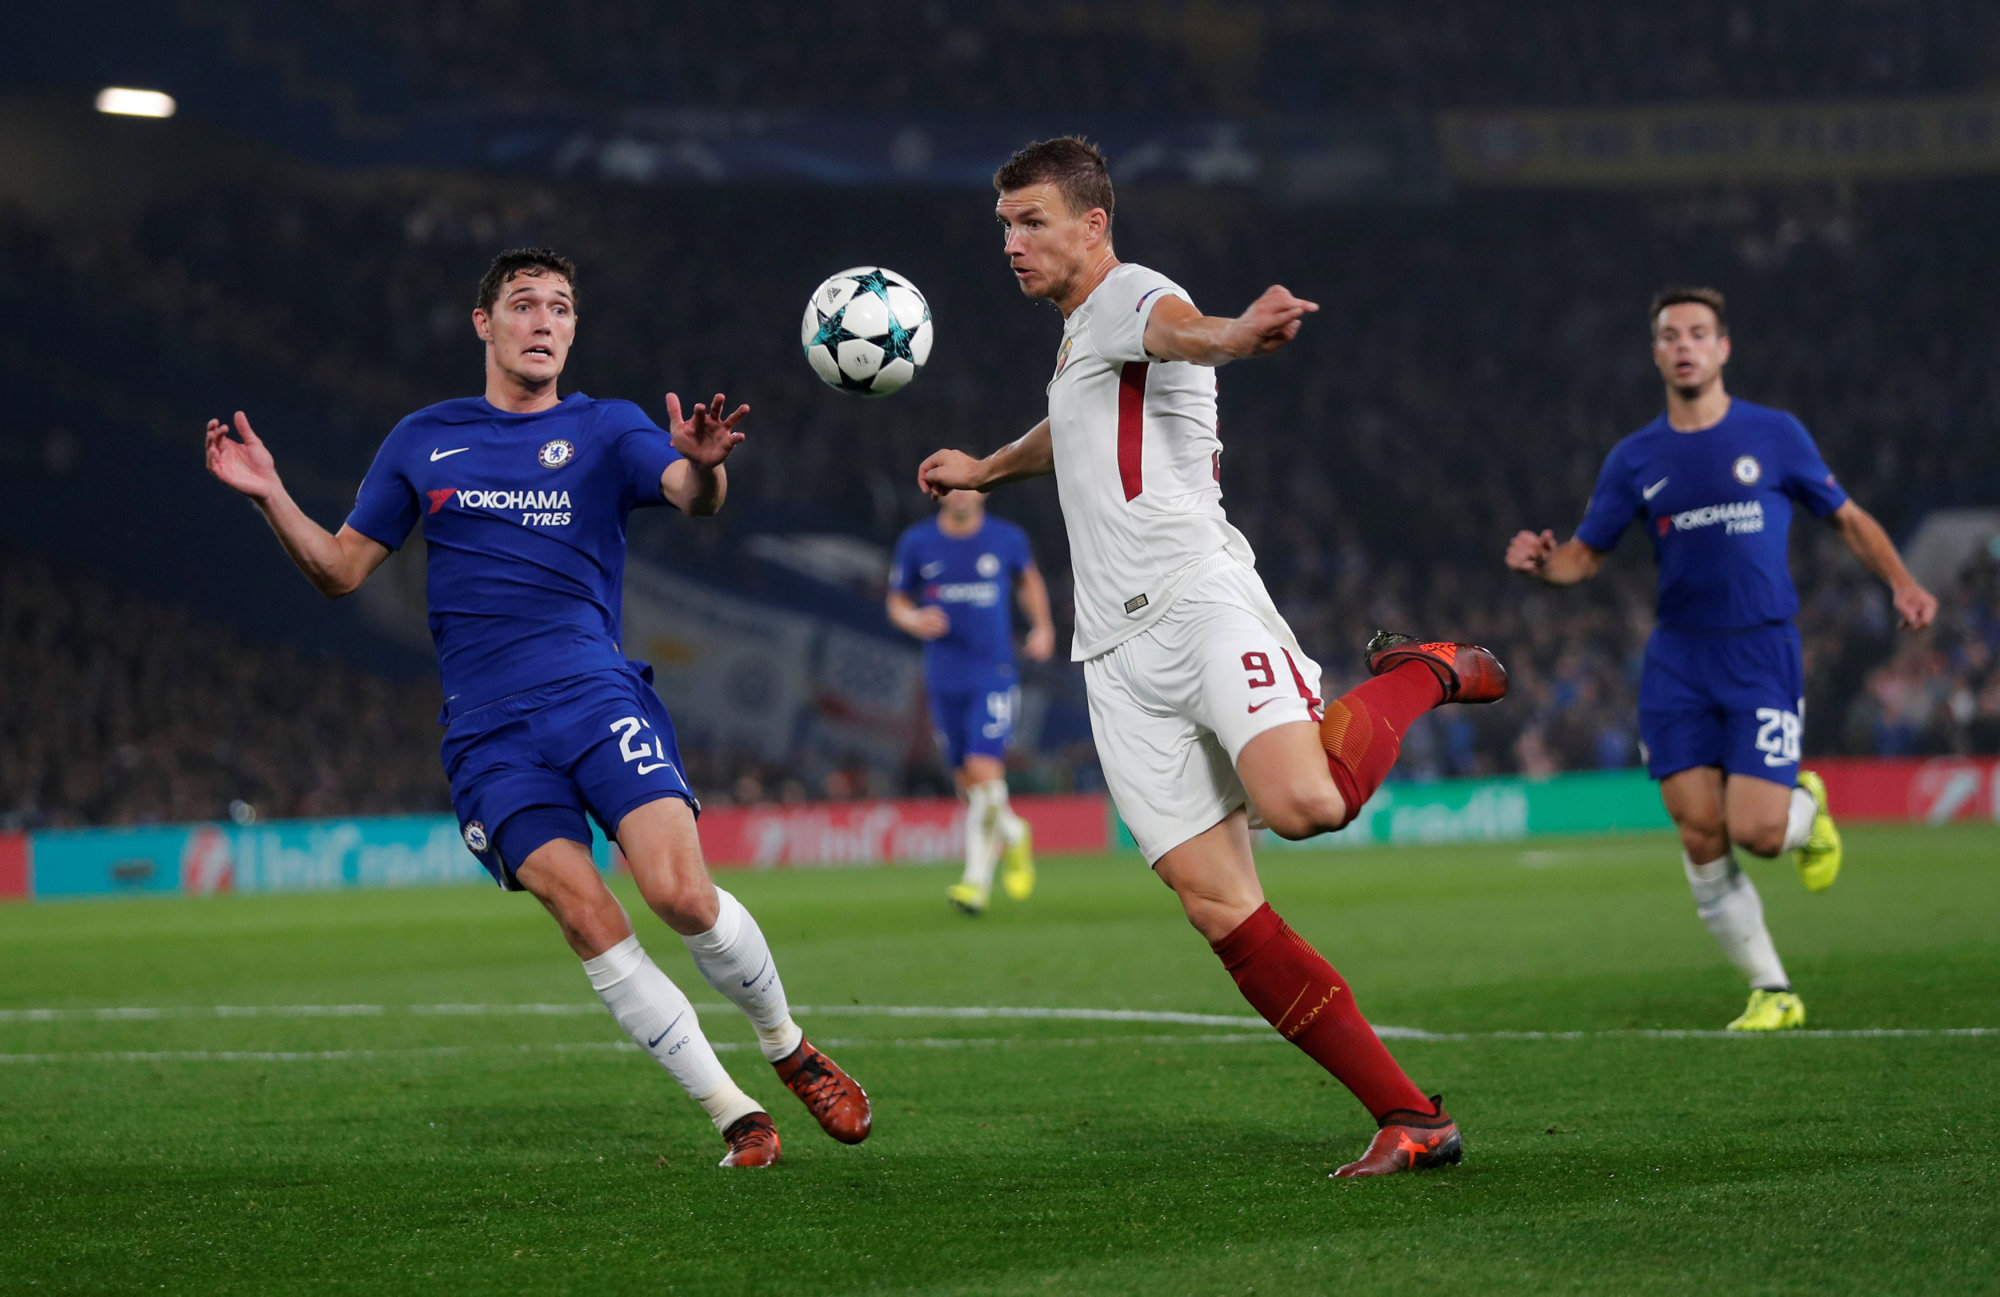 Chelsea Roma stage entertaining draw